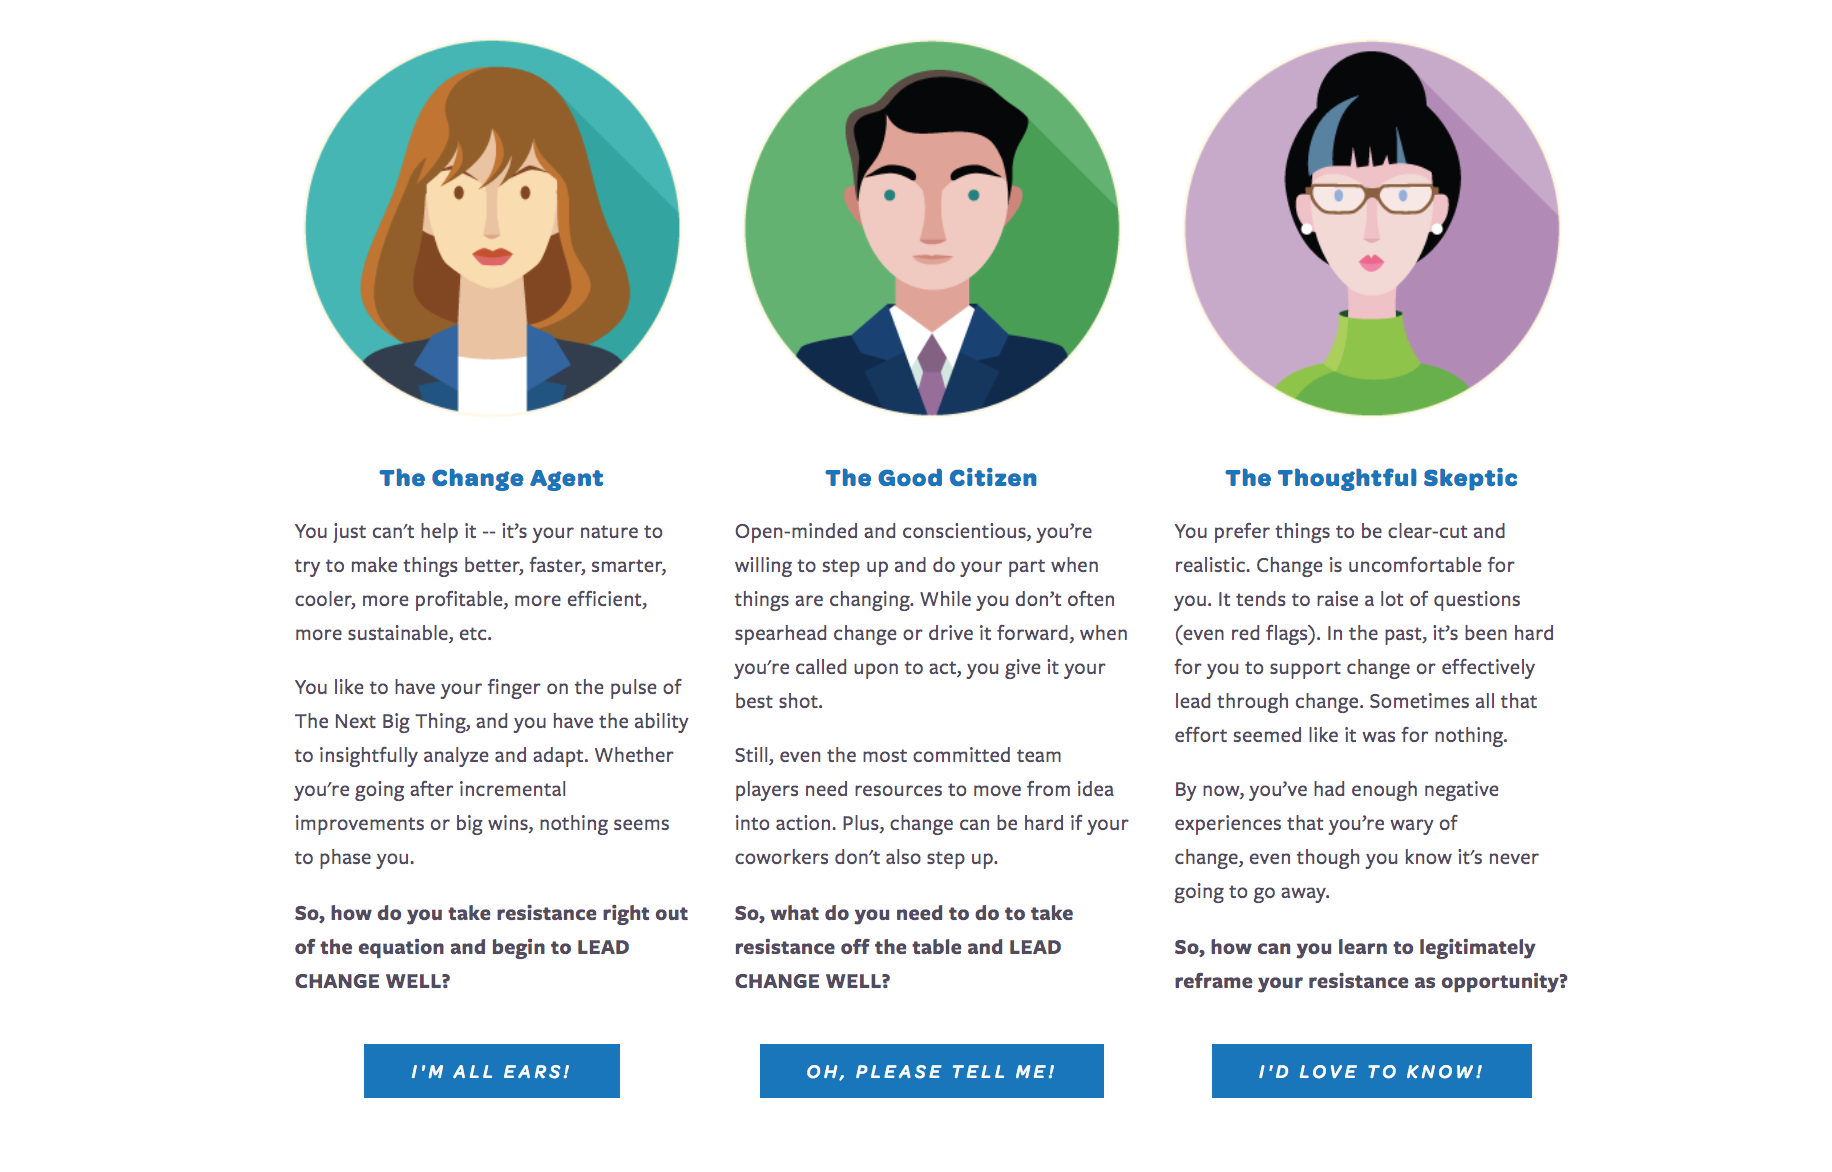 A web page excerpt designed to test users' buyer archetypes and cultural conditions